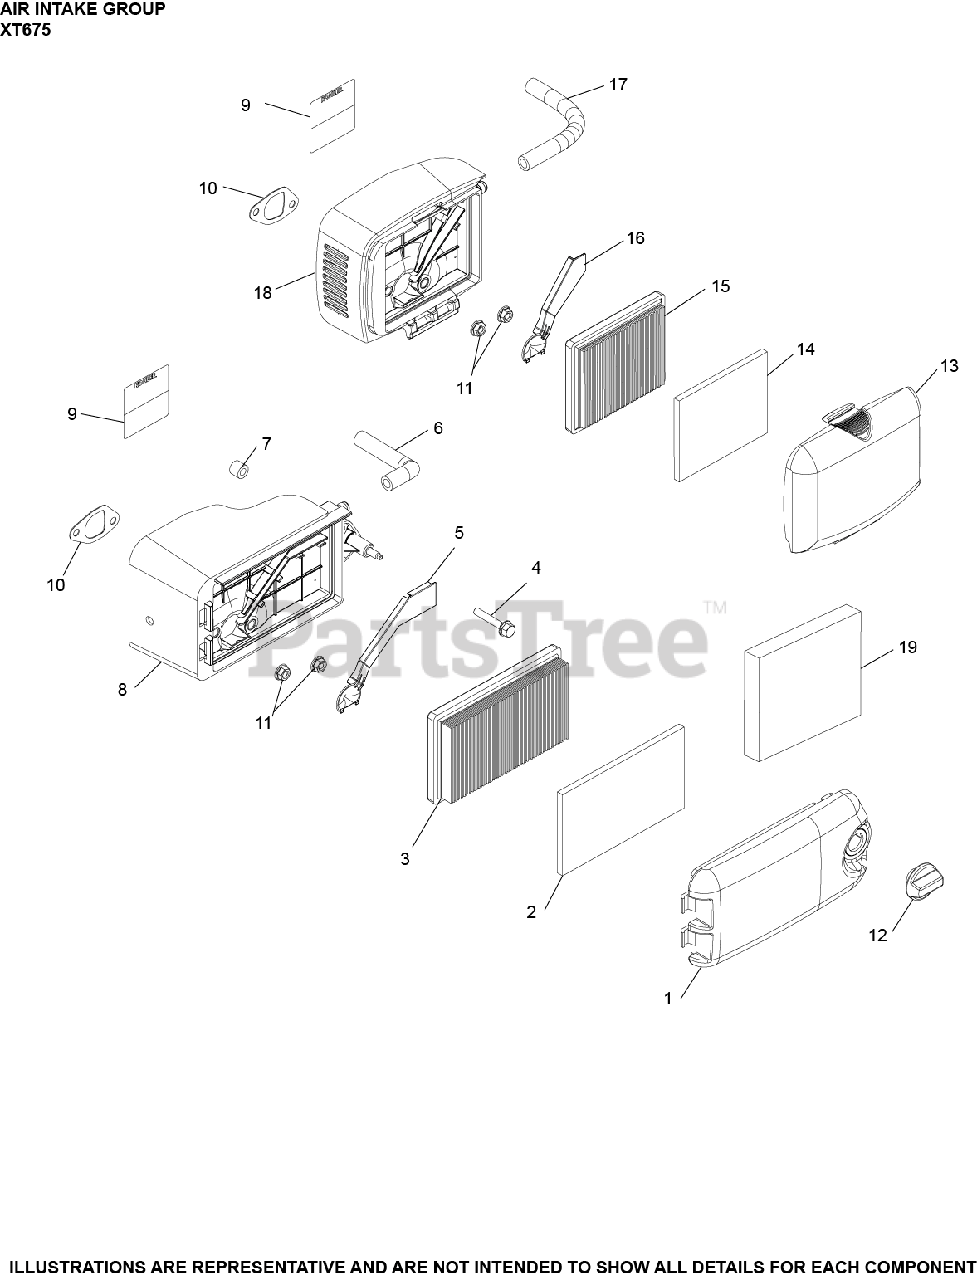 Kohler Parts on the Air Intake Group XT675-2101 Diagram